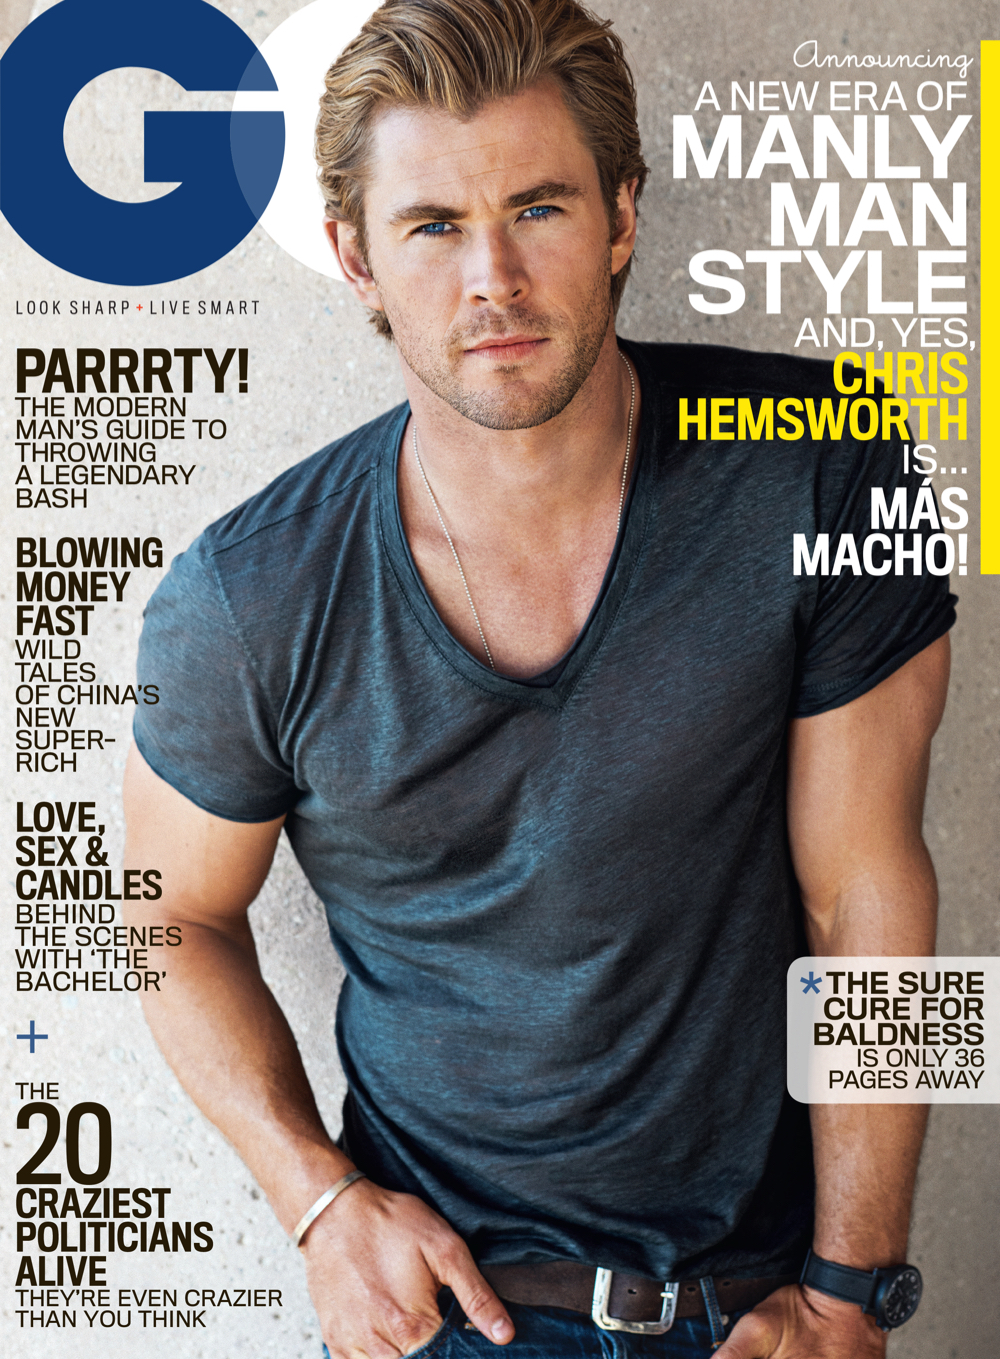 Chris Hemsworth Covers GQ January 2015 Issue, Sports 'Manly' Clothes for Shoot